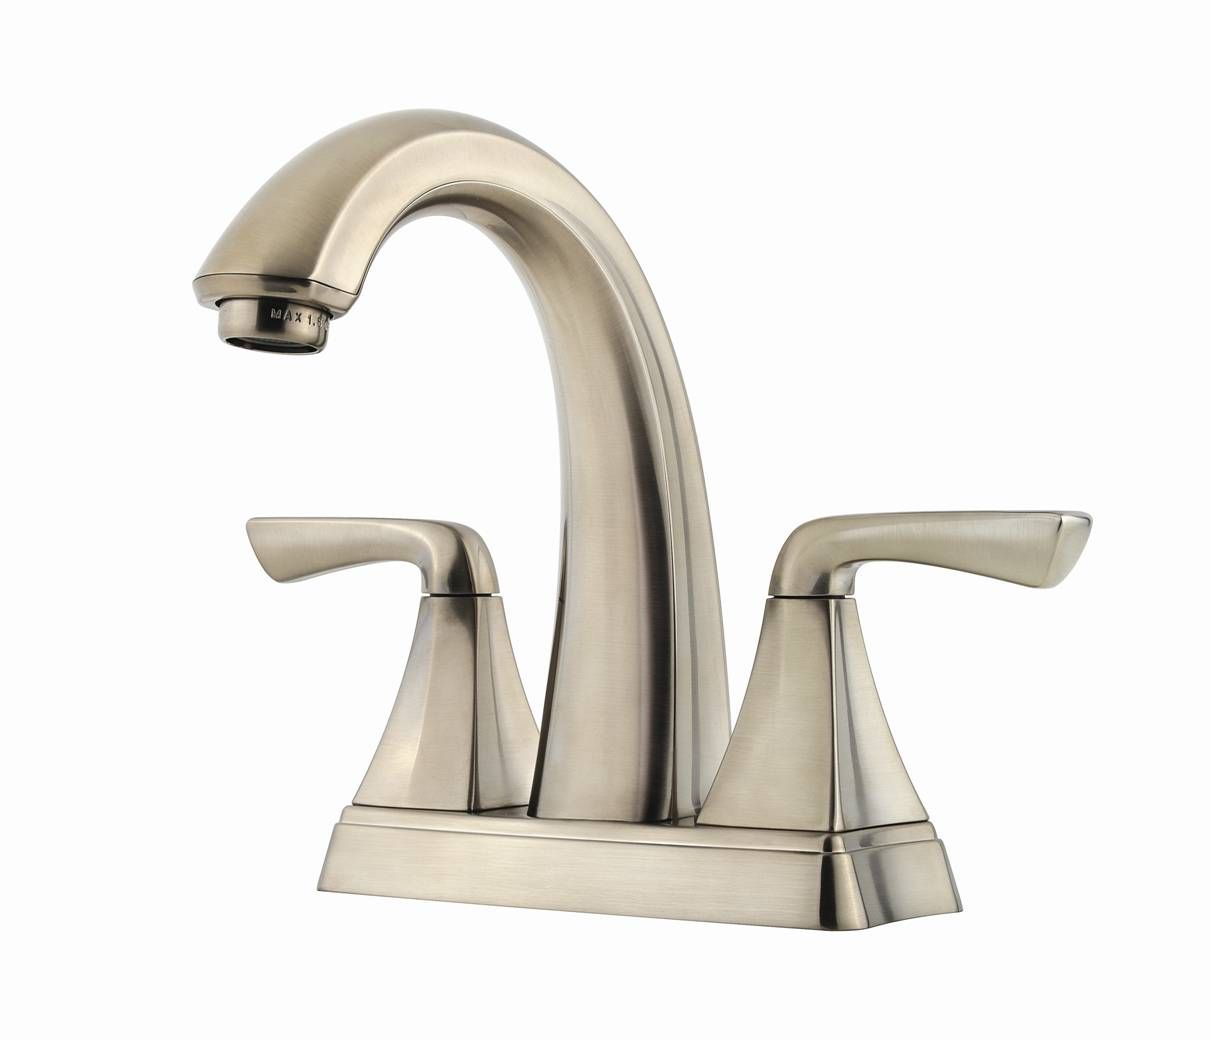 How to Replace Bathtub Faucet | Bathtubs, Bathroom designs and Faucet